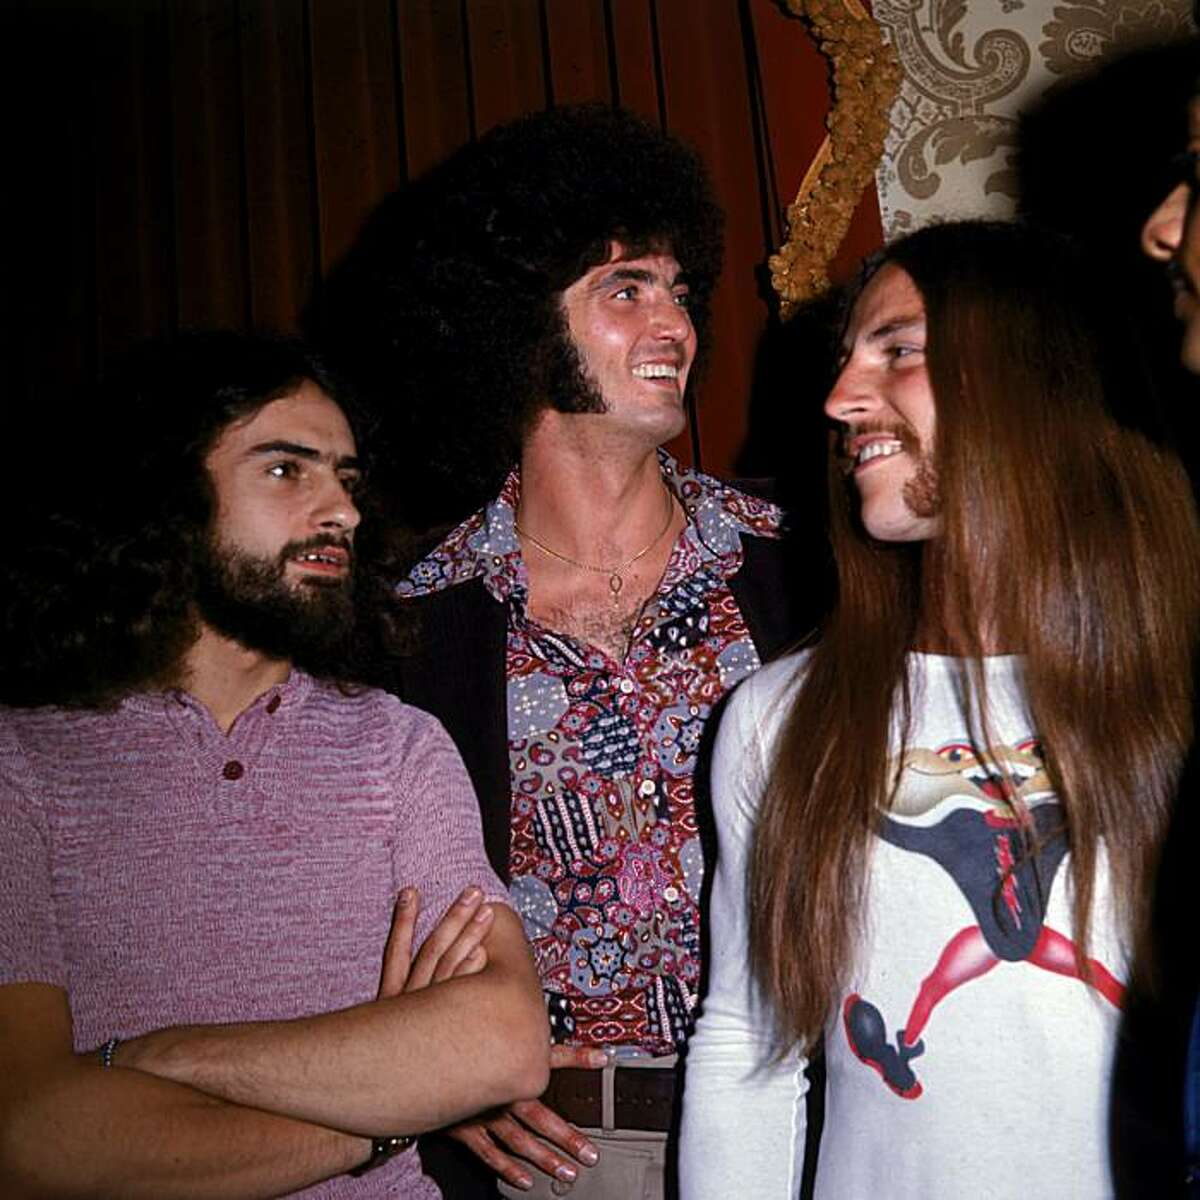 Let's take a look back at some of the musicians who made rock, pop and folk a powerful force in the 1970s. We've tried to keep the captions as they appeared originally, though some minor editing was necessary...Members of the American rock band Grand Funk Railroad, (Left to right): Mel Schacher, Don Brewer, and Mark Farner, 1970s.